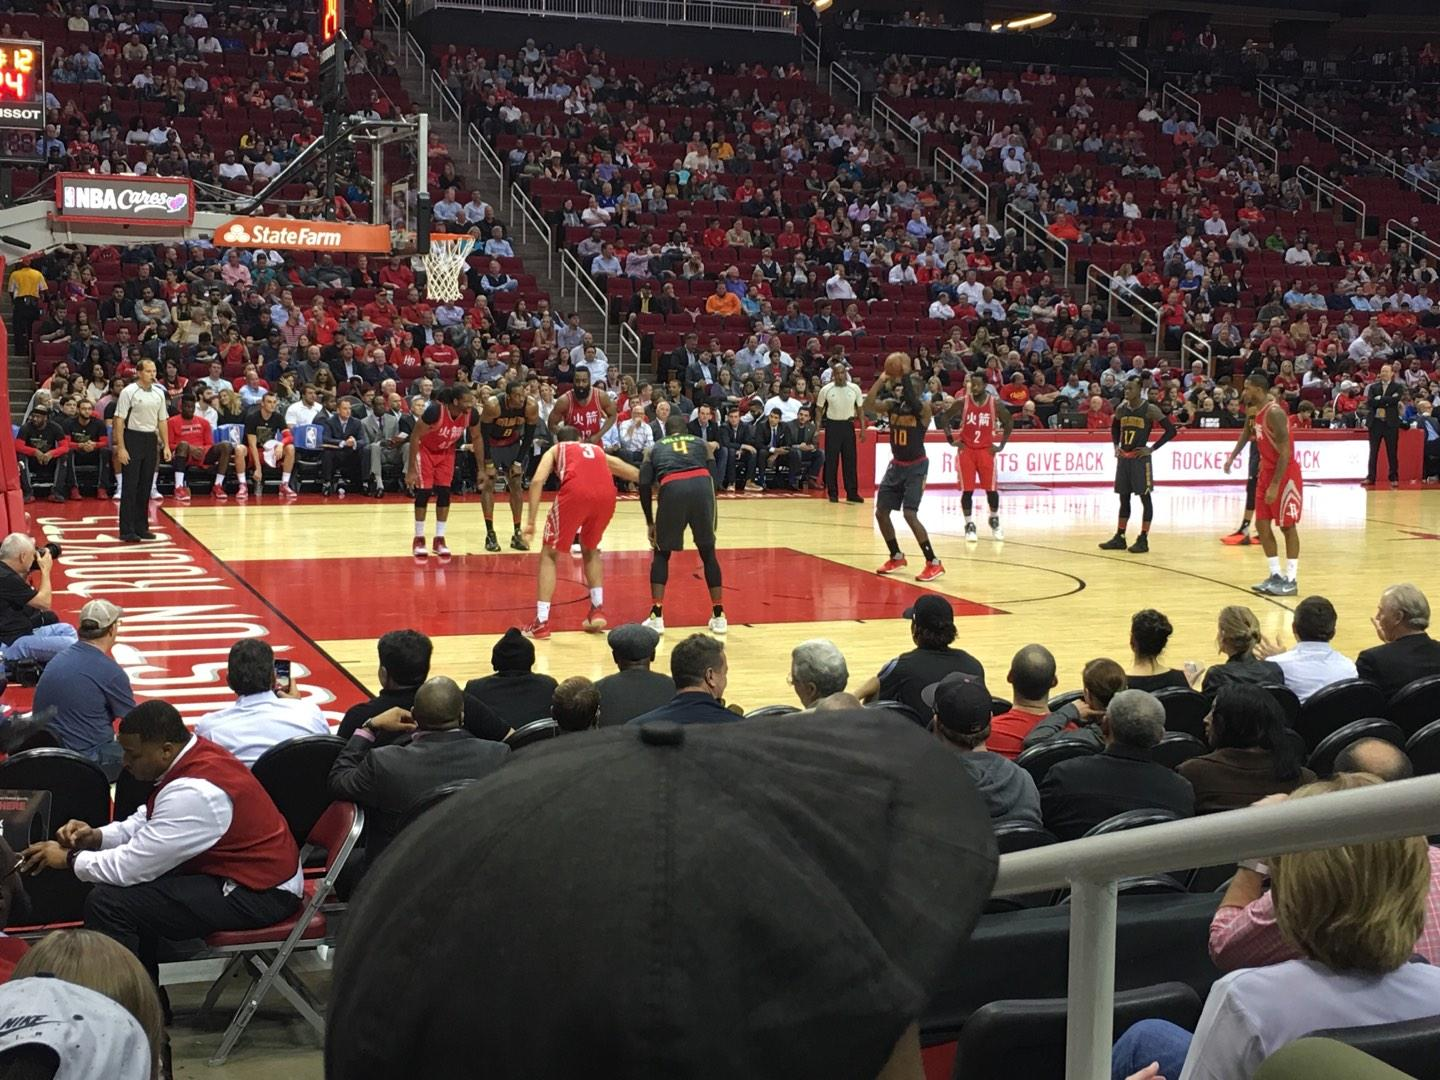 Toyota Center Section 109 Row 5